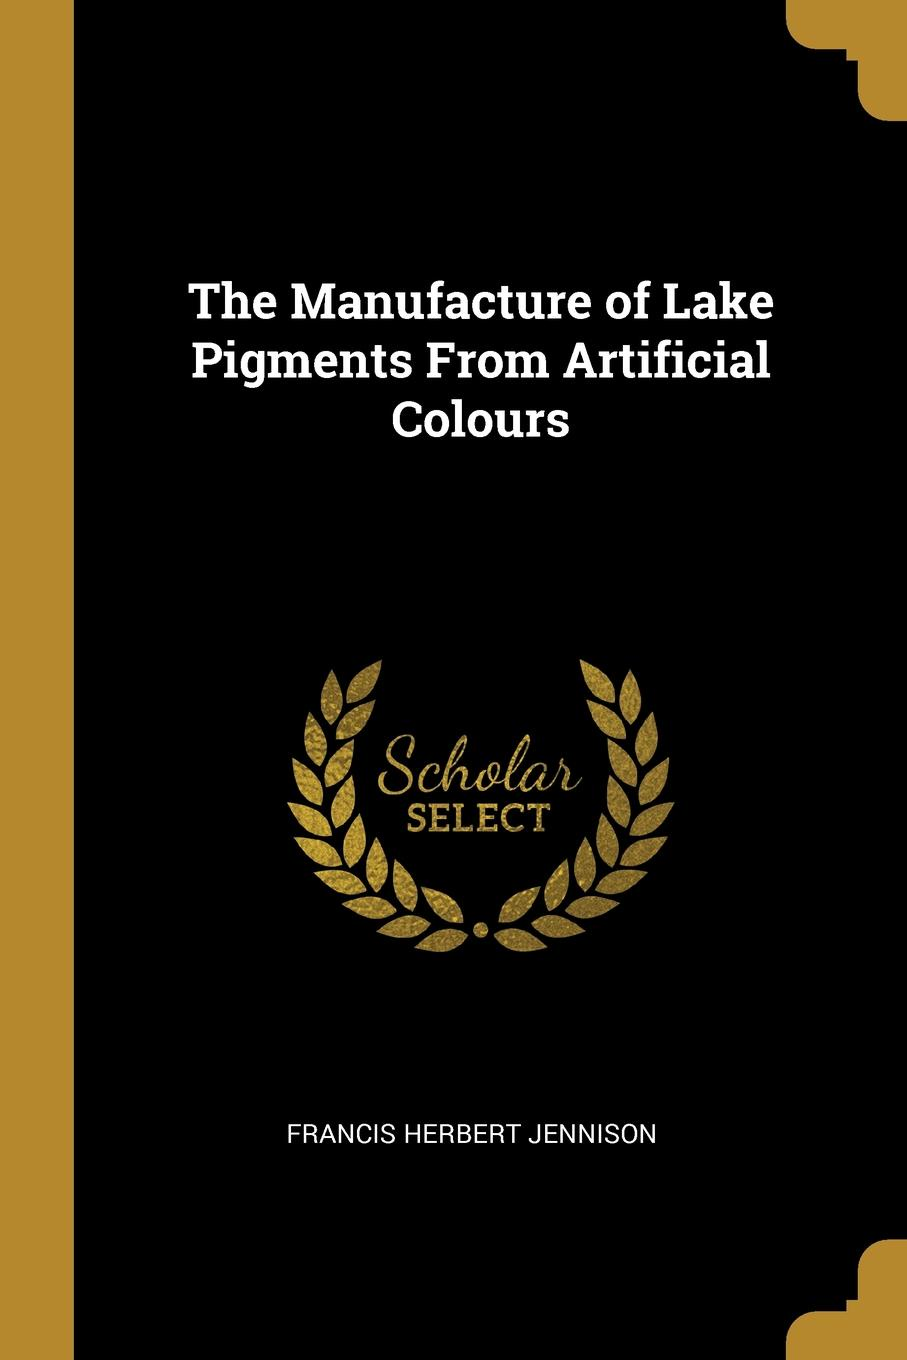 Francis Herbert Jennison. The Manufacture of Lake Pigments From Artificial Colours